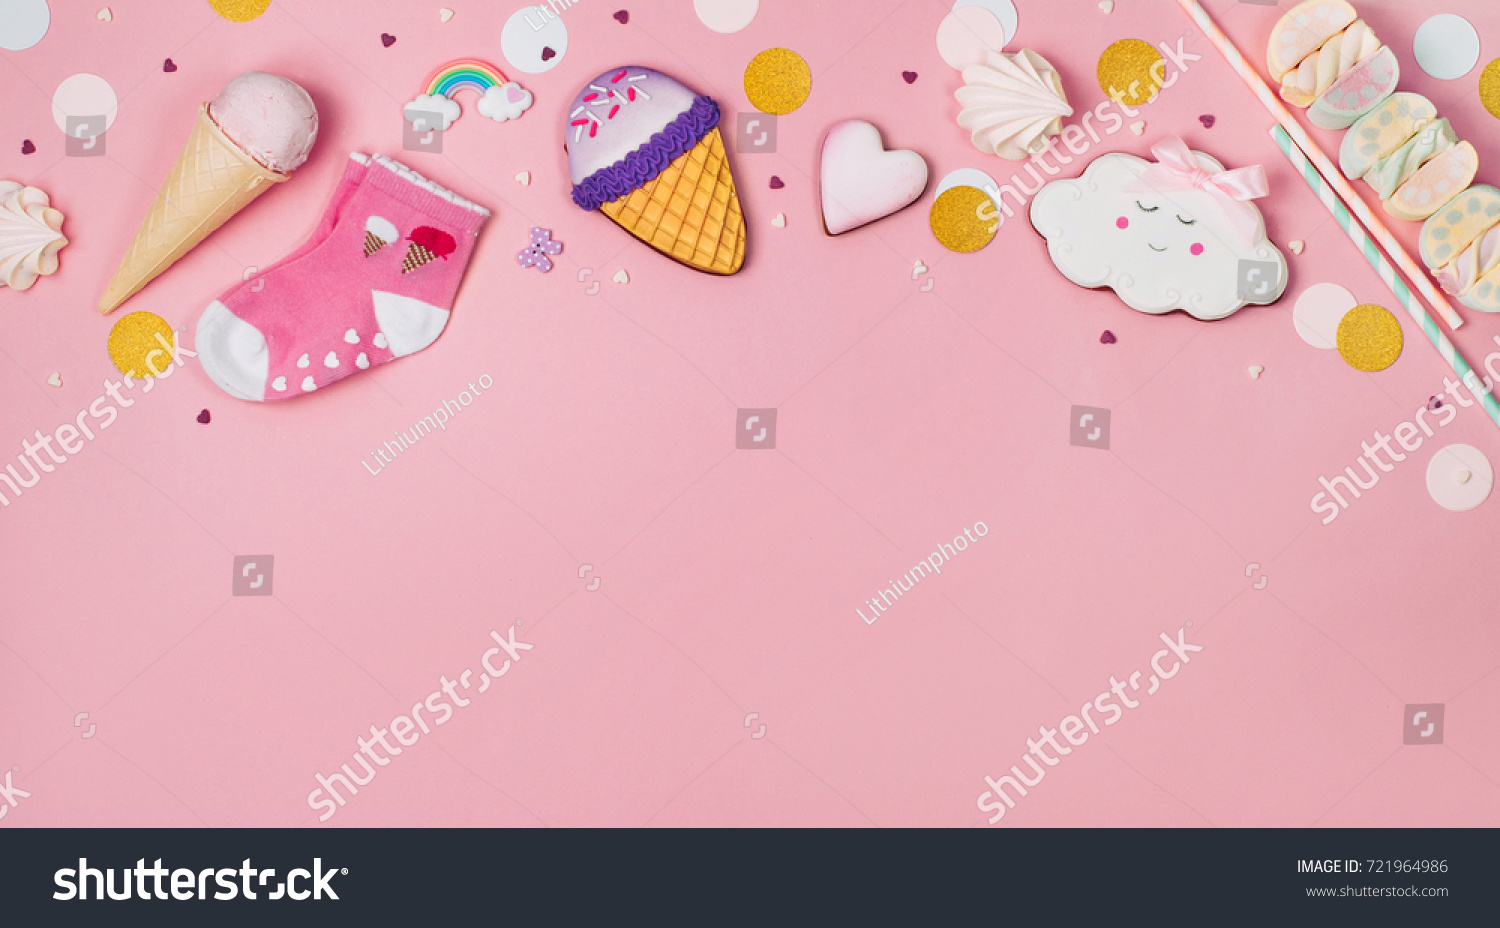 Cute Happy Birthday Party Background Ice Cream Cone Gingerbread And Marshmallows On The Pink